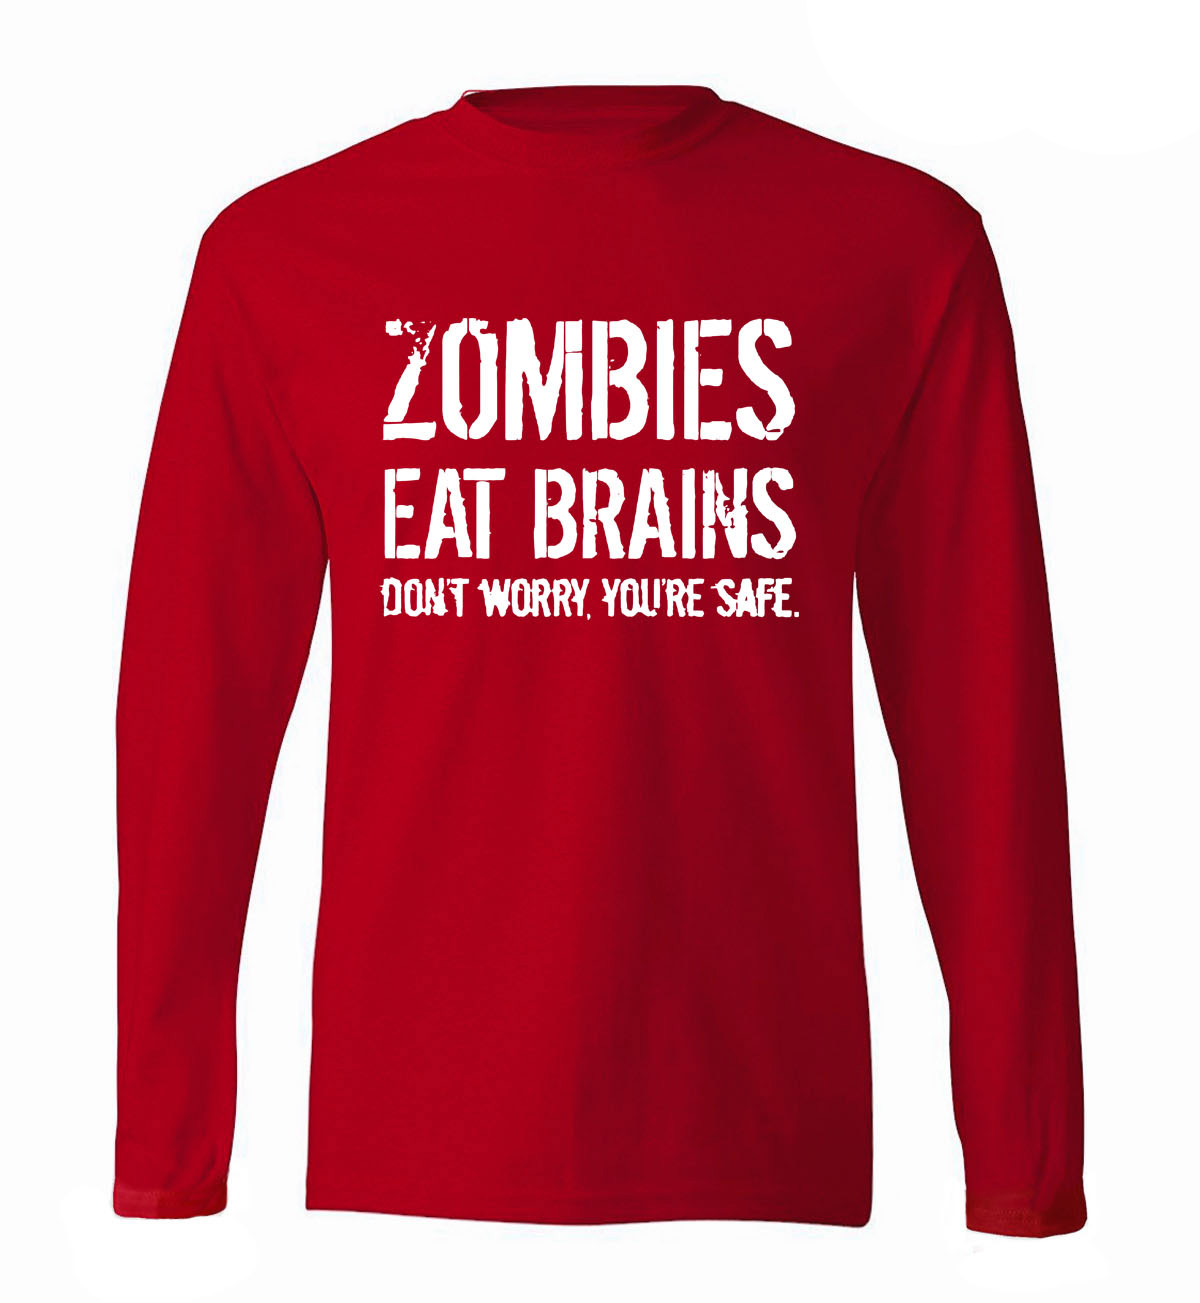 Funny Zombie Men T Shirt Zombies Eat Brains men's long sleeve T-shirts 2019 new spring cotton high quality fitness men top tees